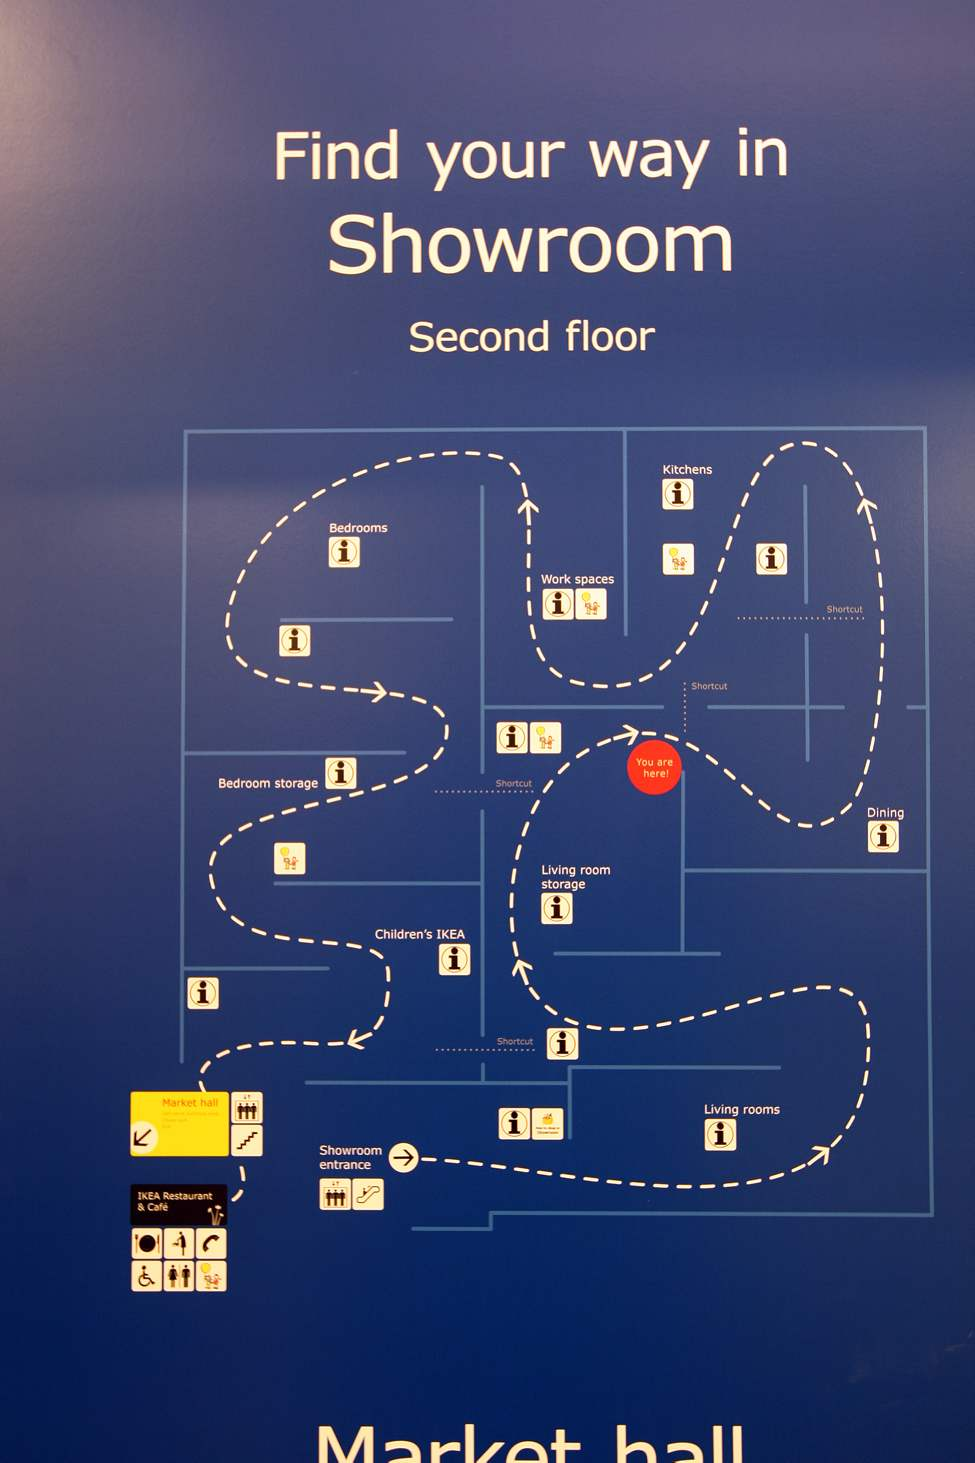 Map of second floor show room. (JOE BRYKSA / WINNIPEG FREE PRESS)